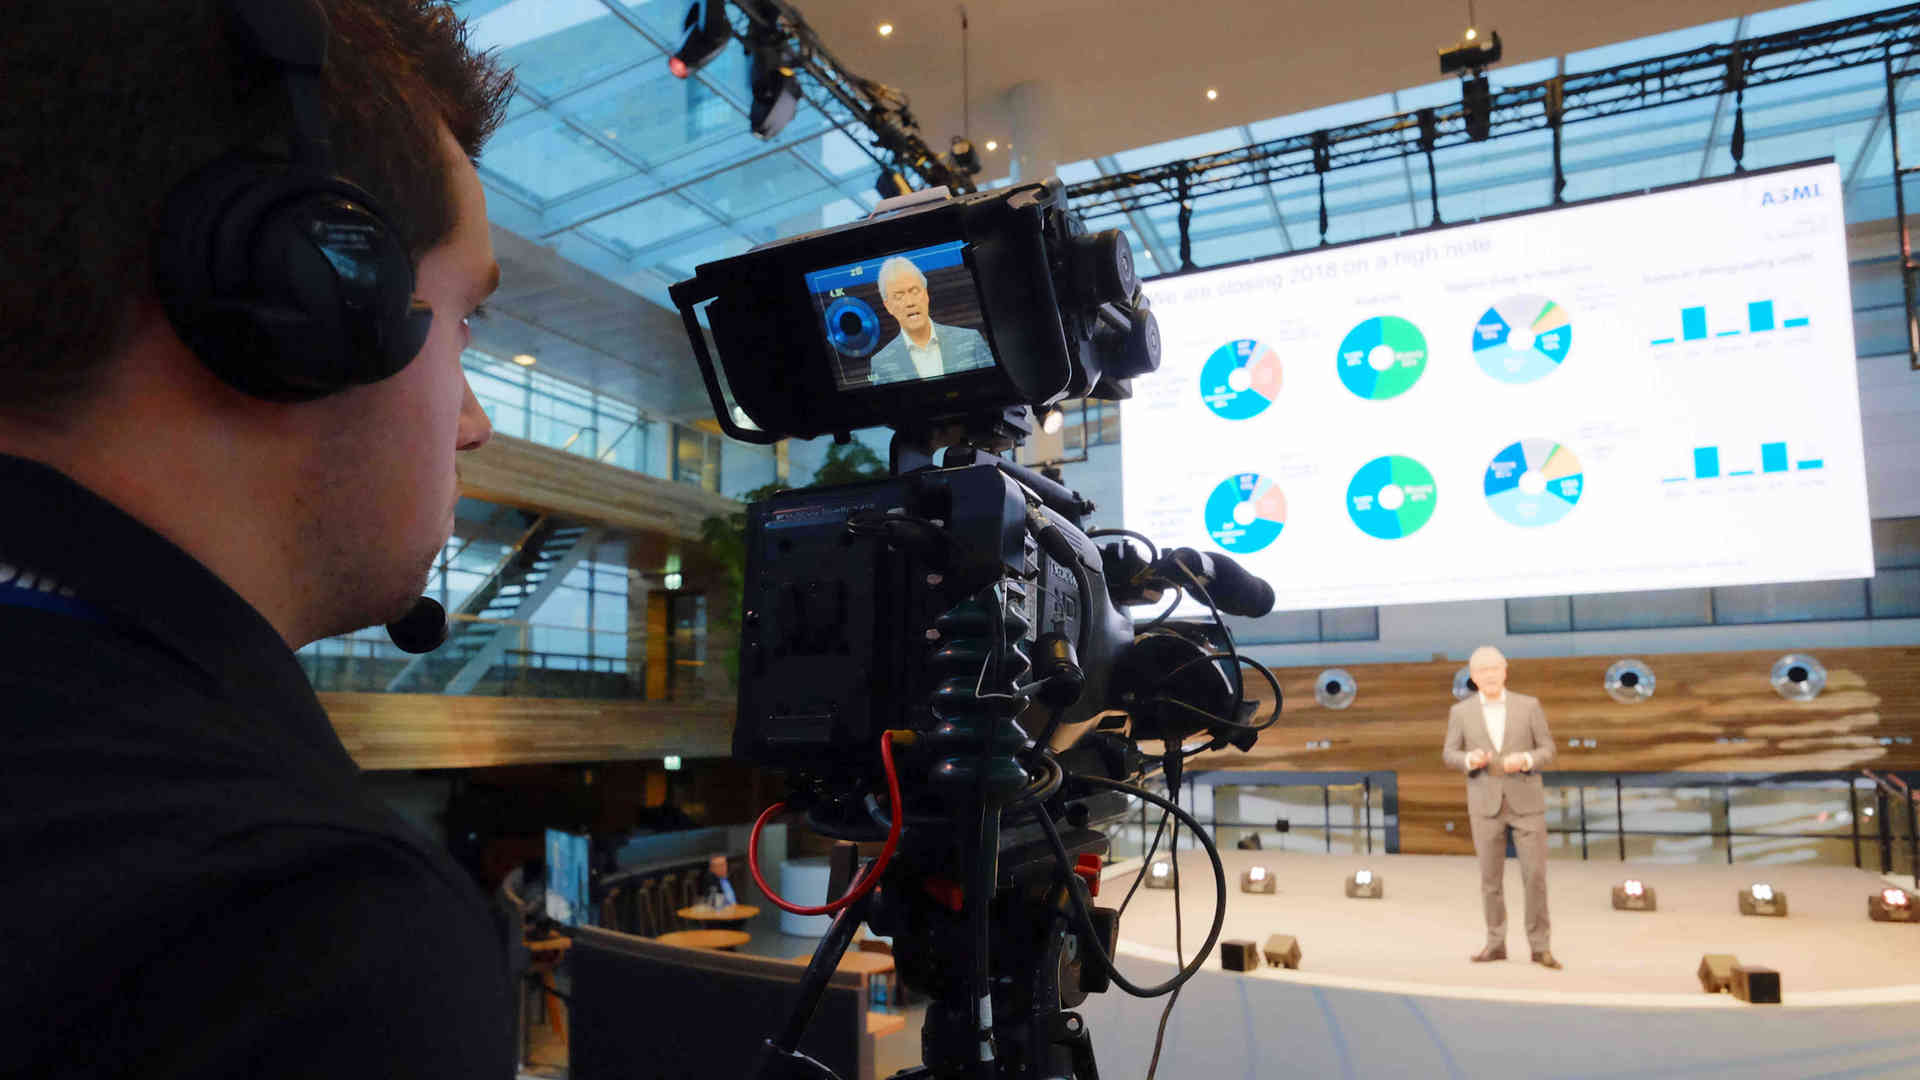 Live camera & LED screen for live streaming event in London